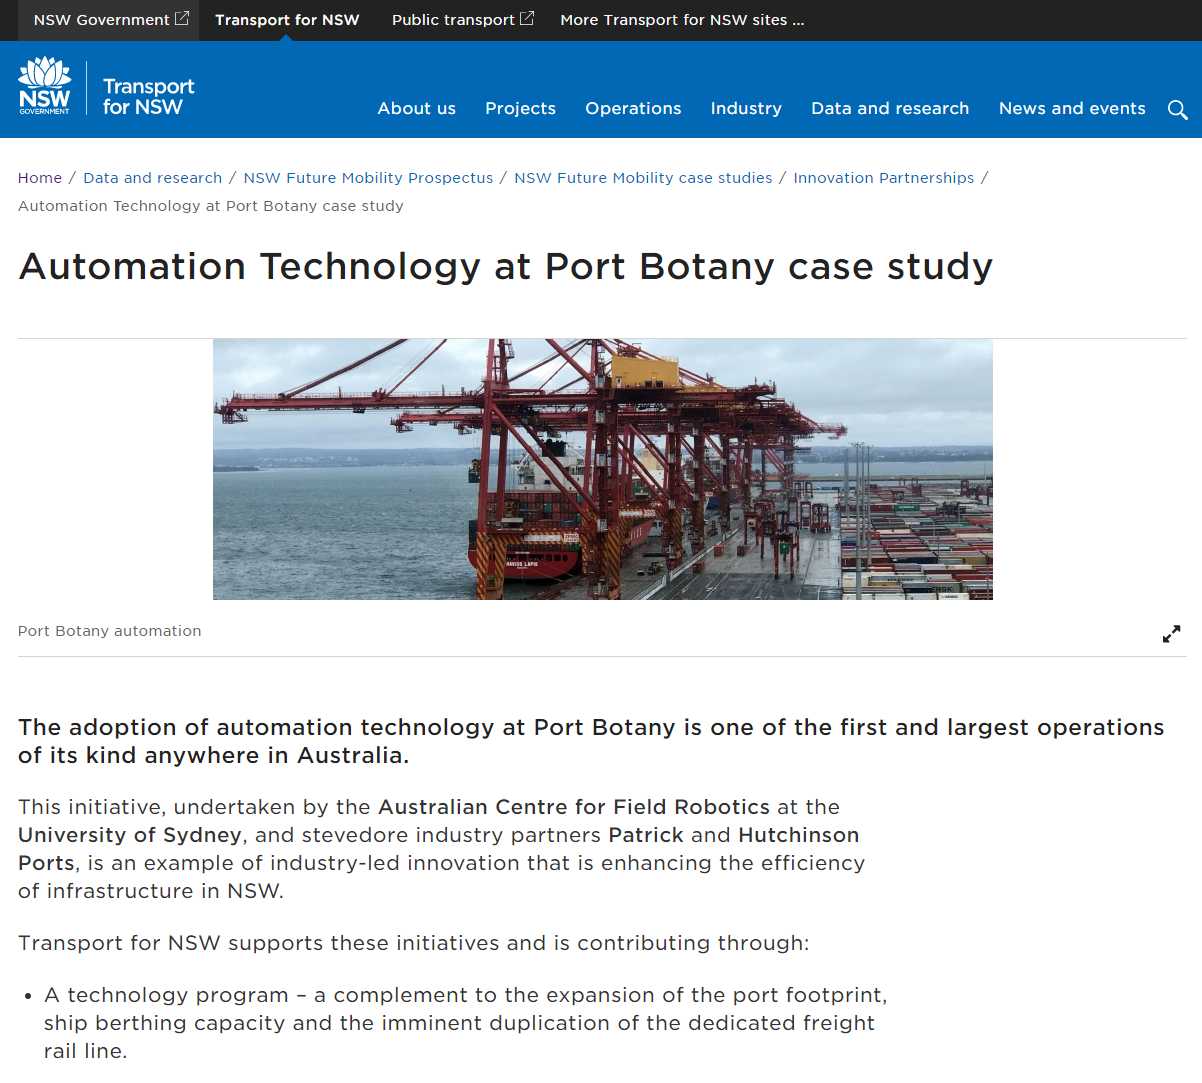 20190812 TfNSW Automation Technology at Port Botany Case Study